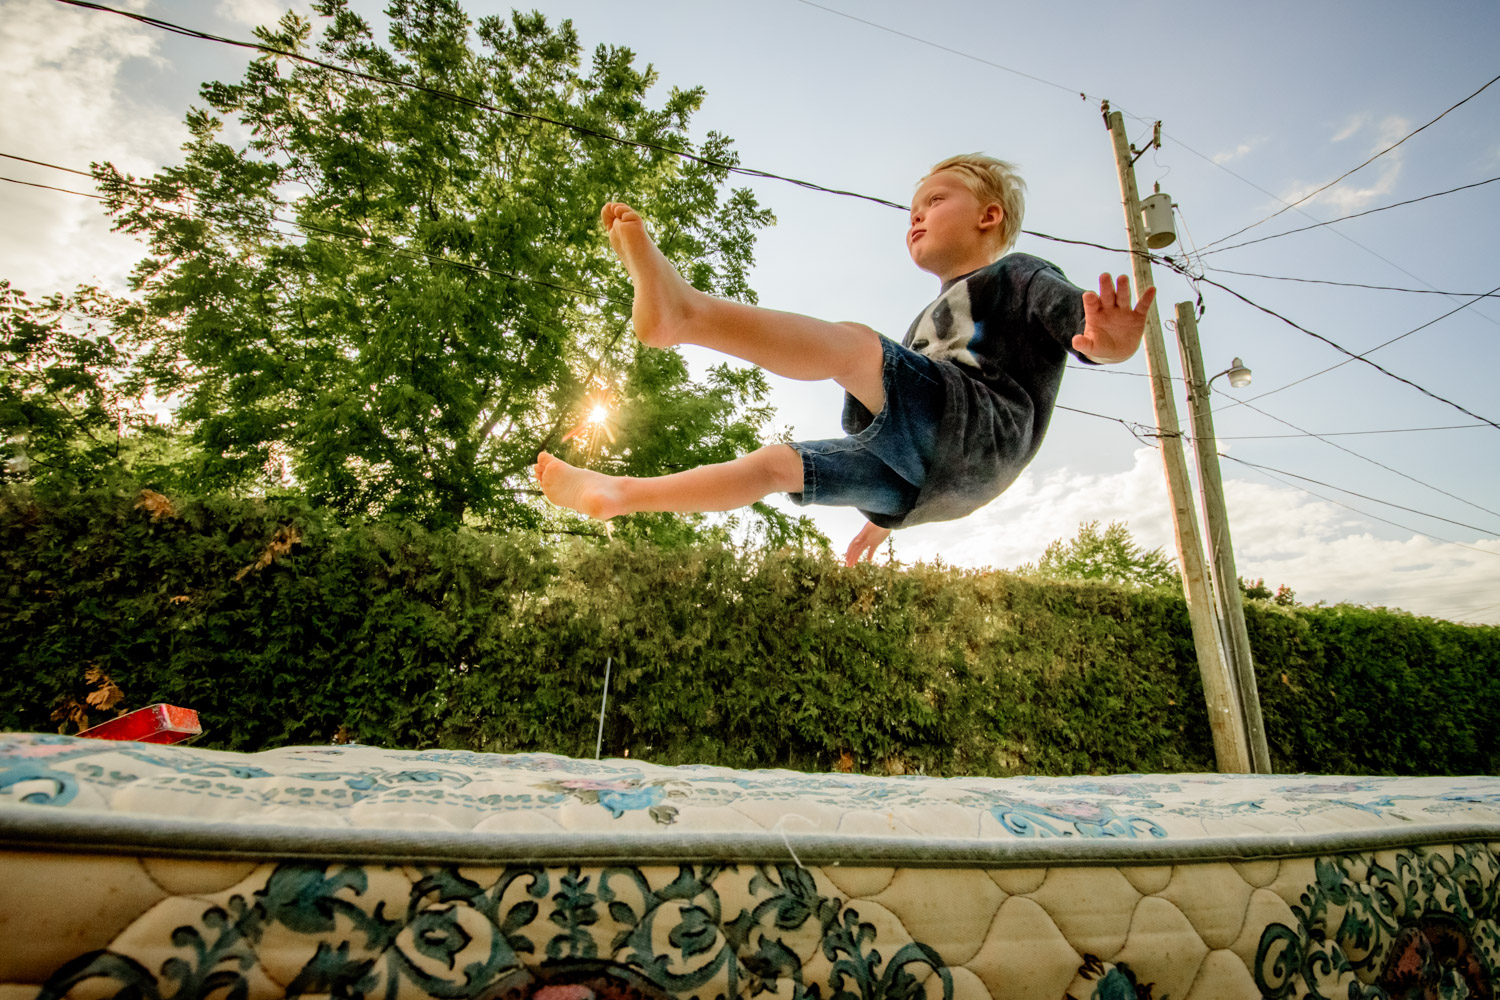 Image: Before it was hauled away, my kids turned this mattress into a trampoline. A low angle helped...